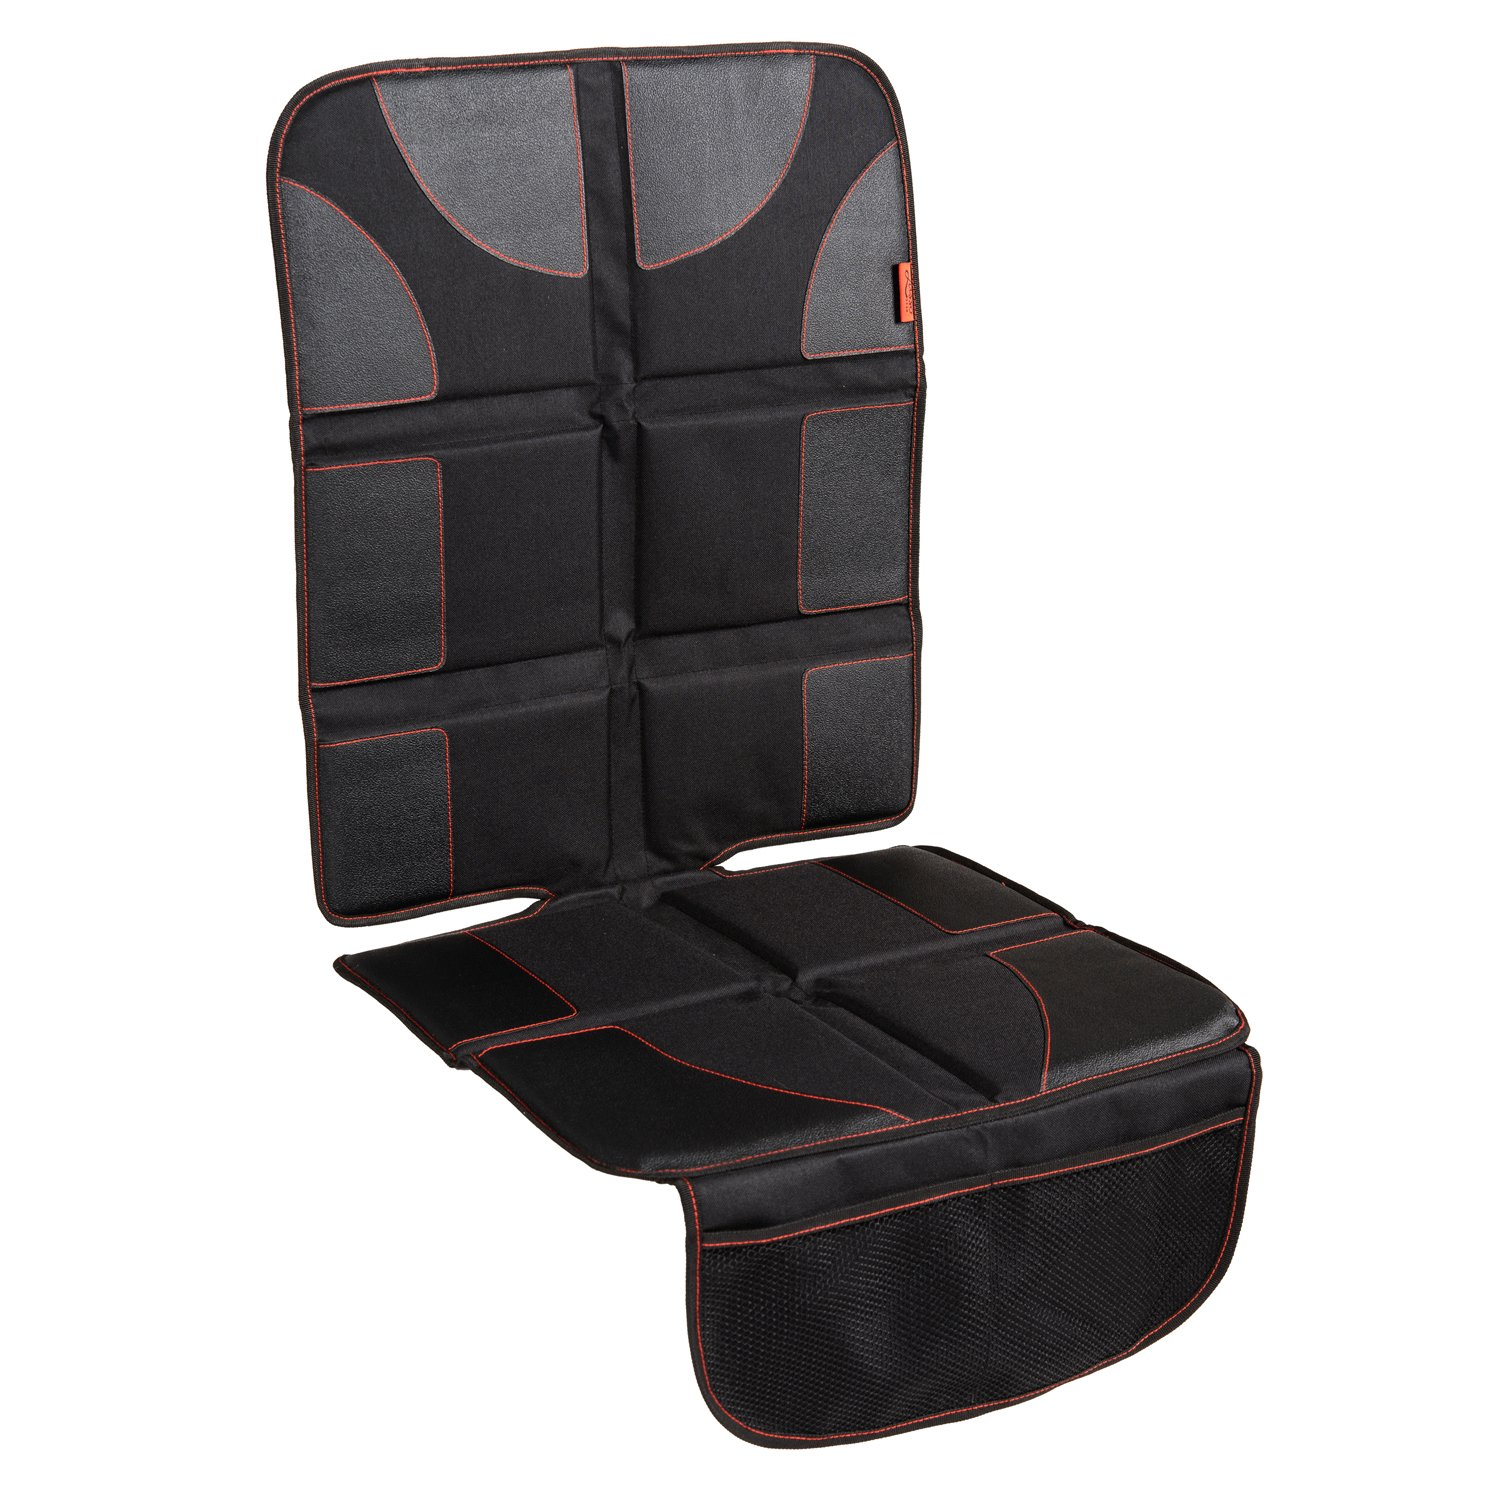 Car Seat Protector With Thickest Padding   Featuring XL Size (Best Coverage  Available), Durable, Waterproof 600D Fabric, PVC Leather Reinforced Corners  U0026 2 ...